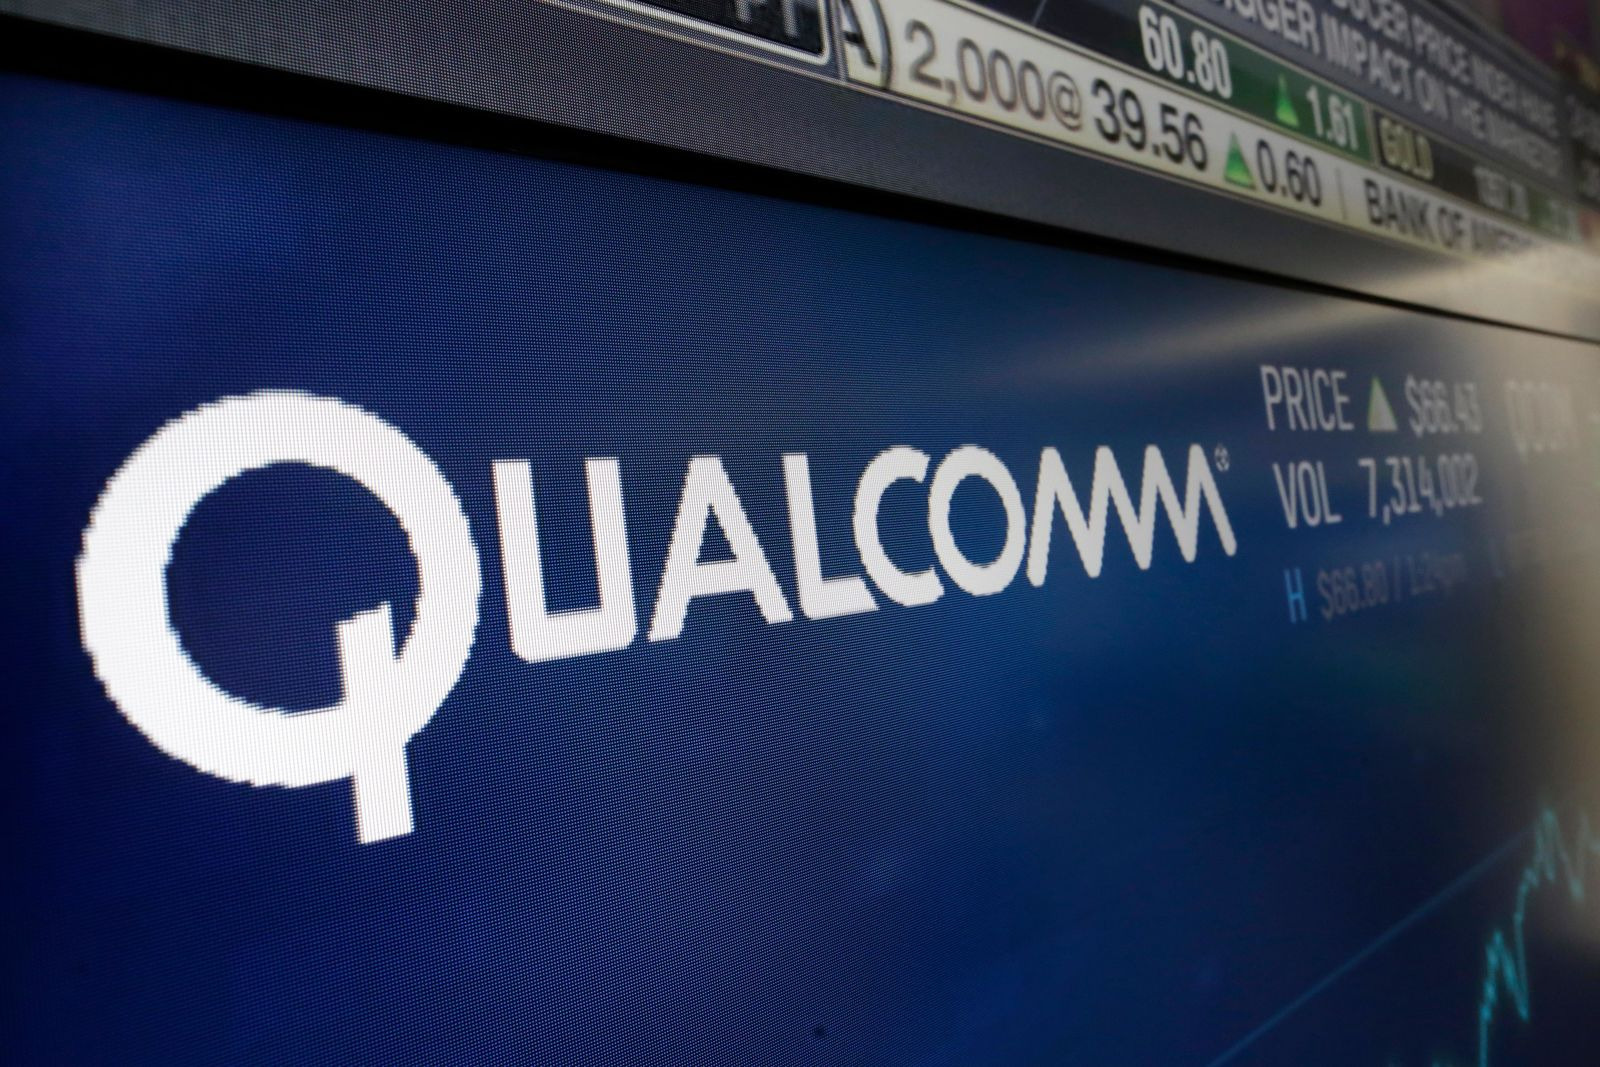 "FILE - This Wednesday, Feb. 14, 2018 file photo shows the logo for Qualcomm on a screen at the Nasdaq MarketSite, in New York. The European Union has fined U.S. chipmaker Qualcomm $271 million, accusing it of ""predatory pricing."" (AP Photo/Richard Drew, File)"